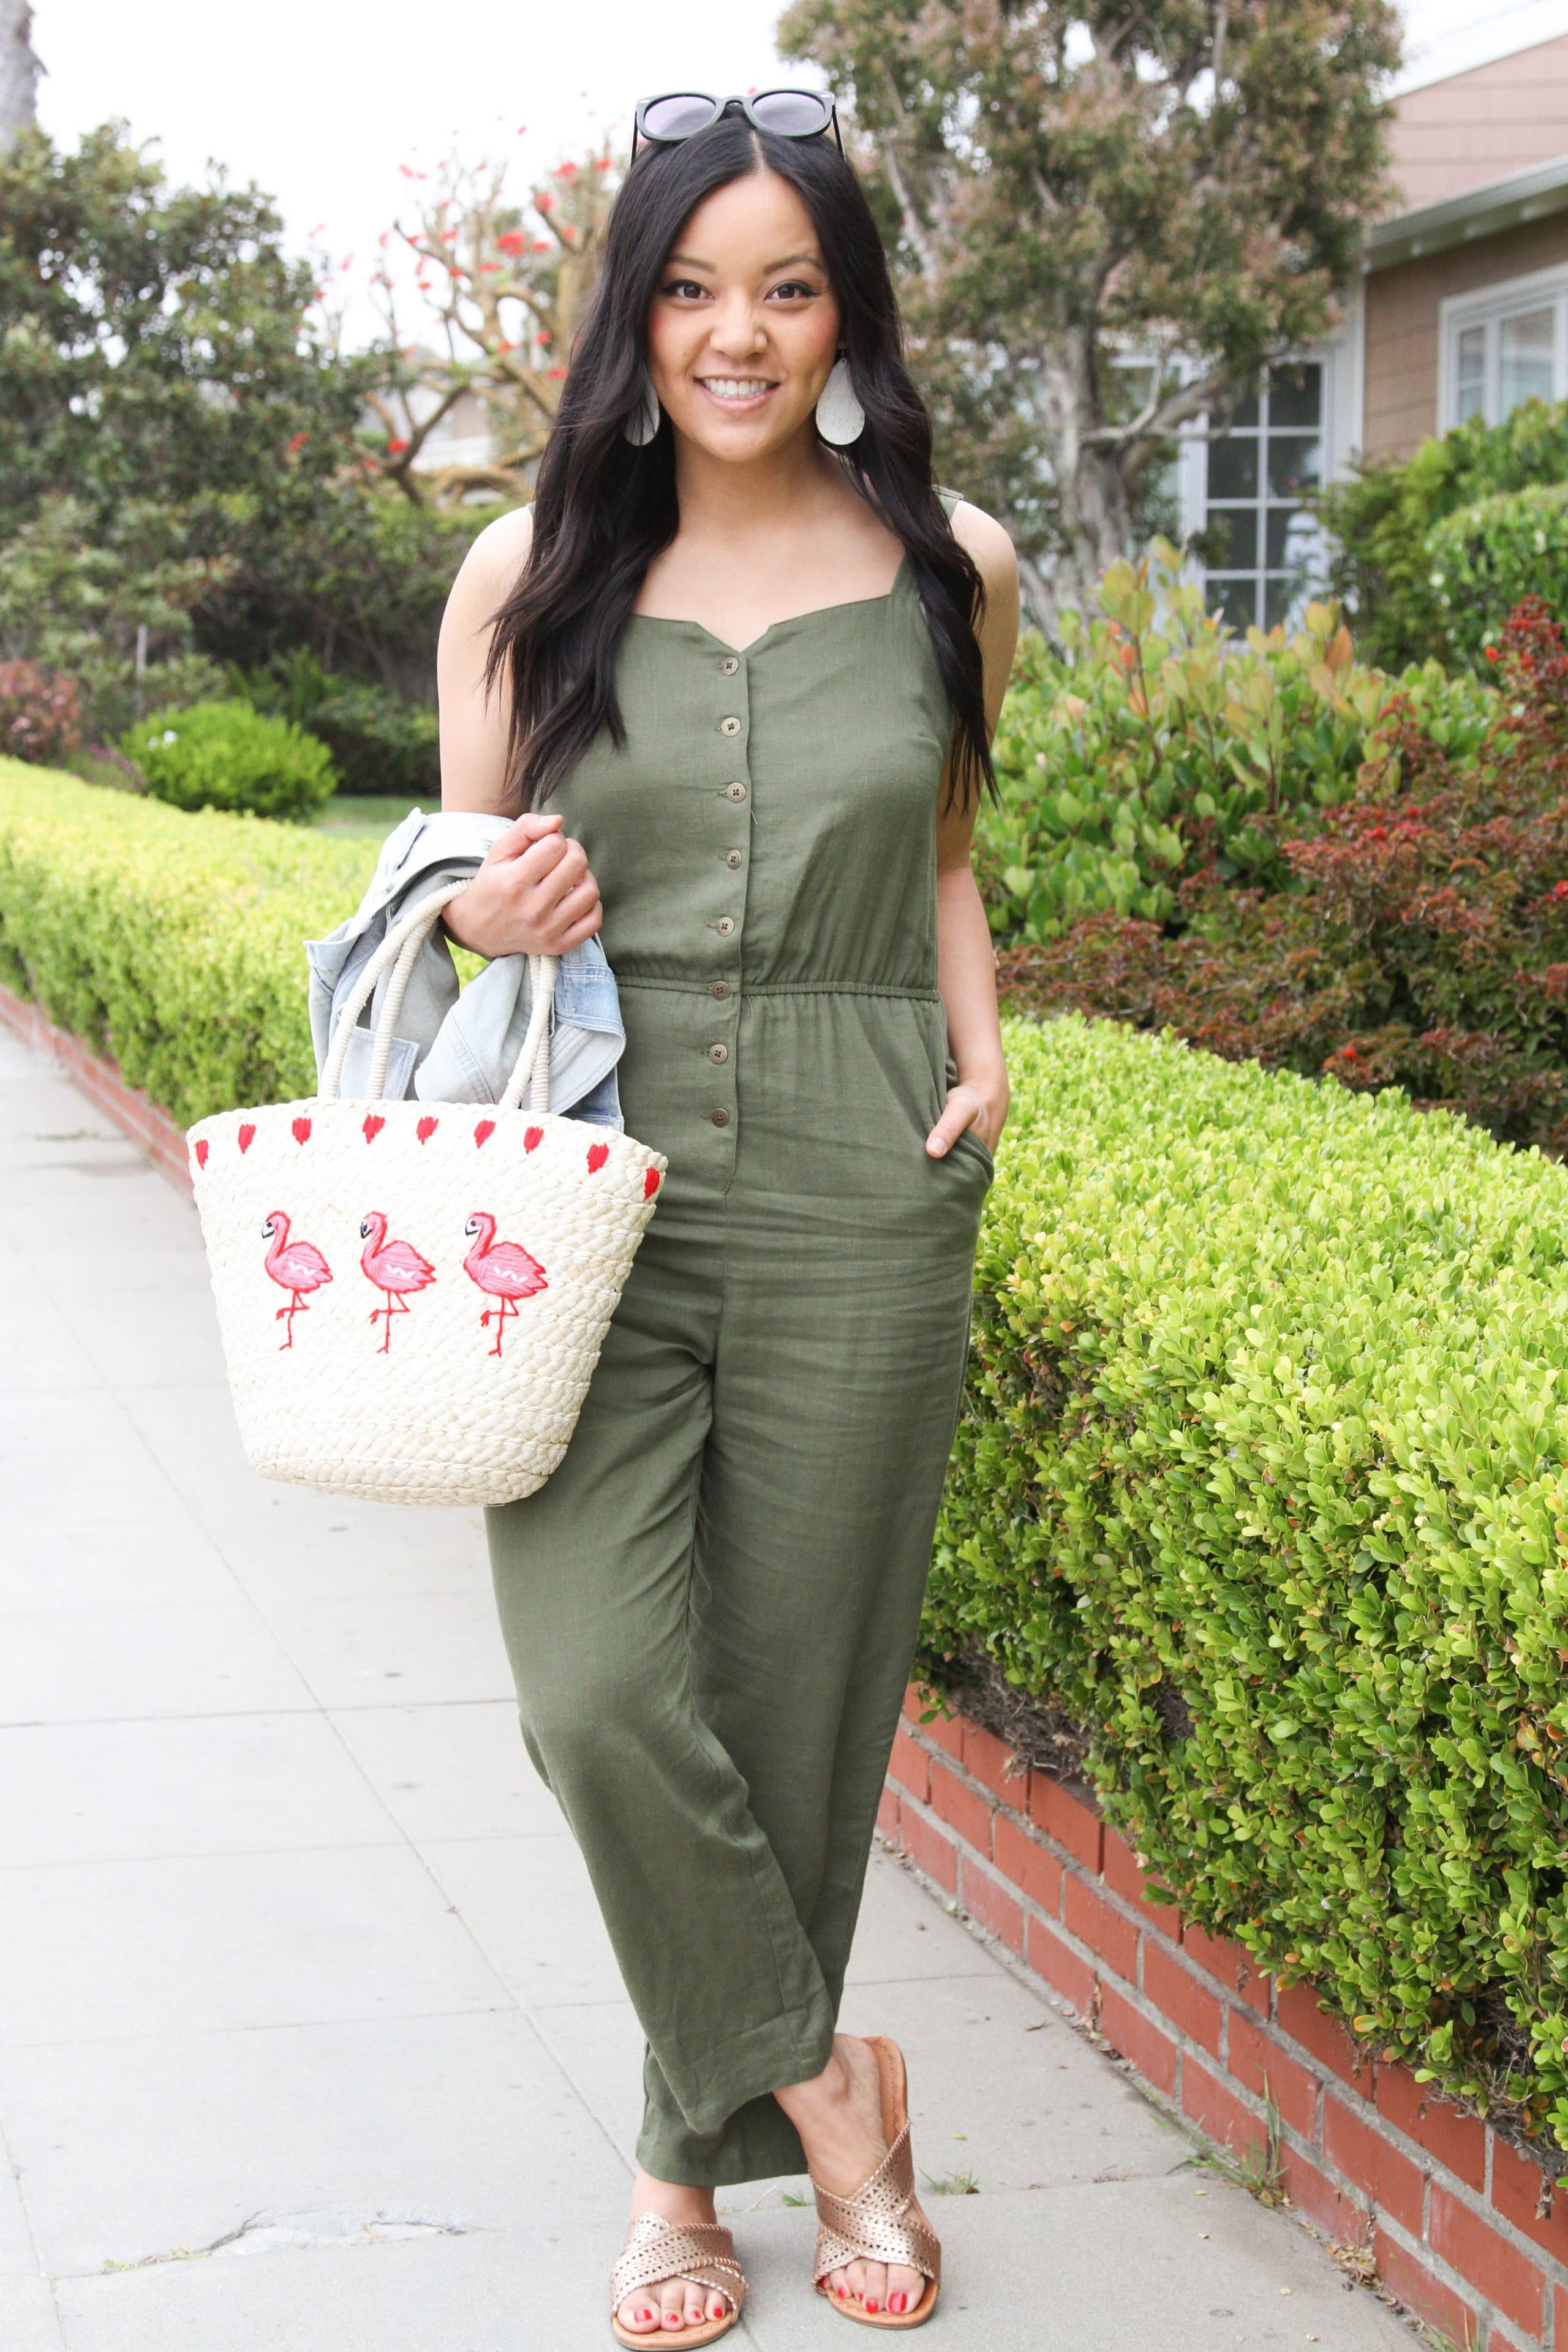 Straw Tote + Gold Sandals + Green Jumpsuit + Statement Earrings